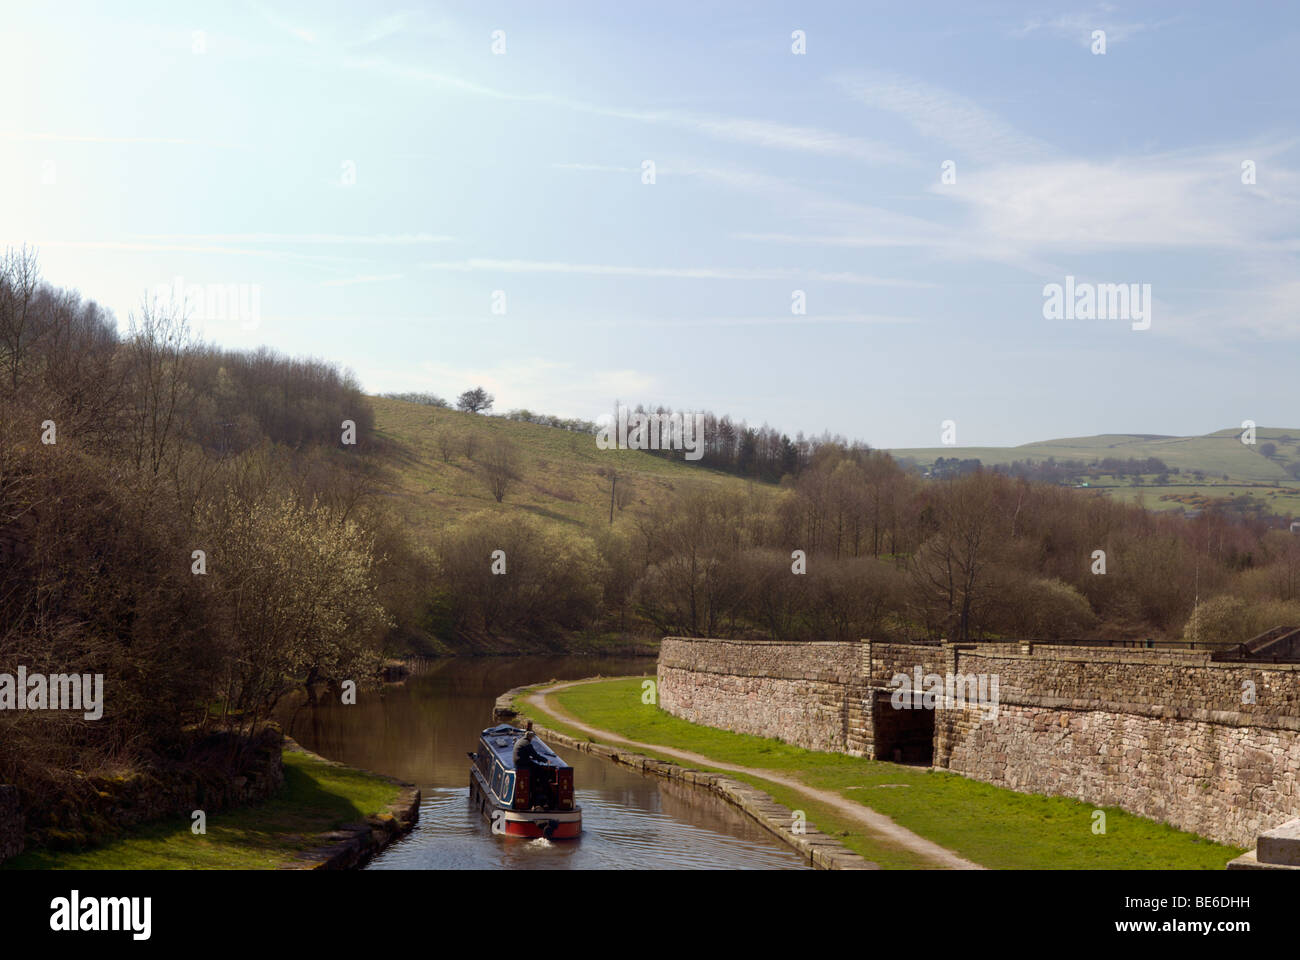 Longboat travelling on the' Peak Forest Canal' at Bugsworth - Stock Image